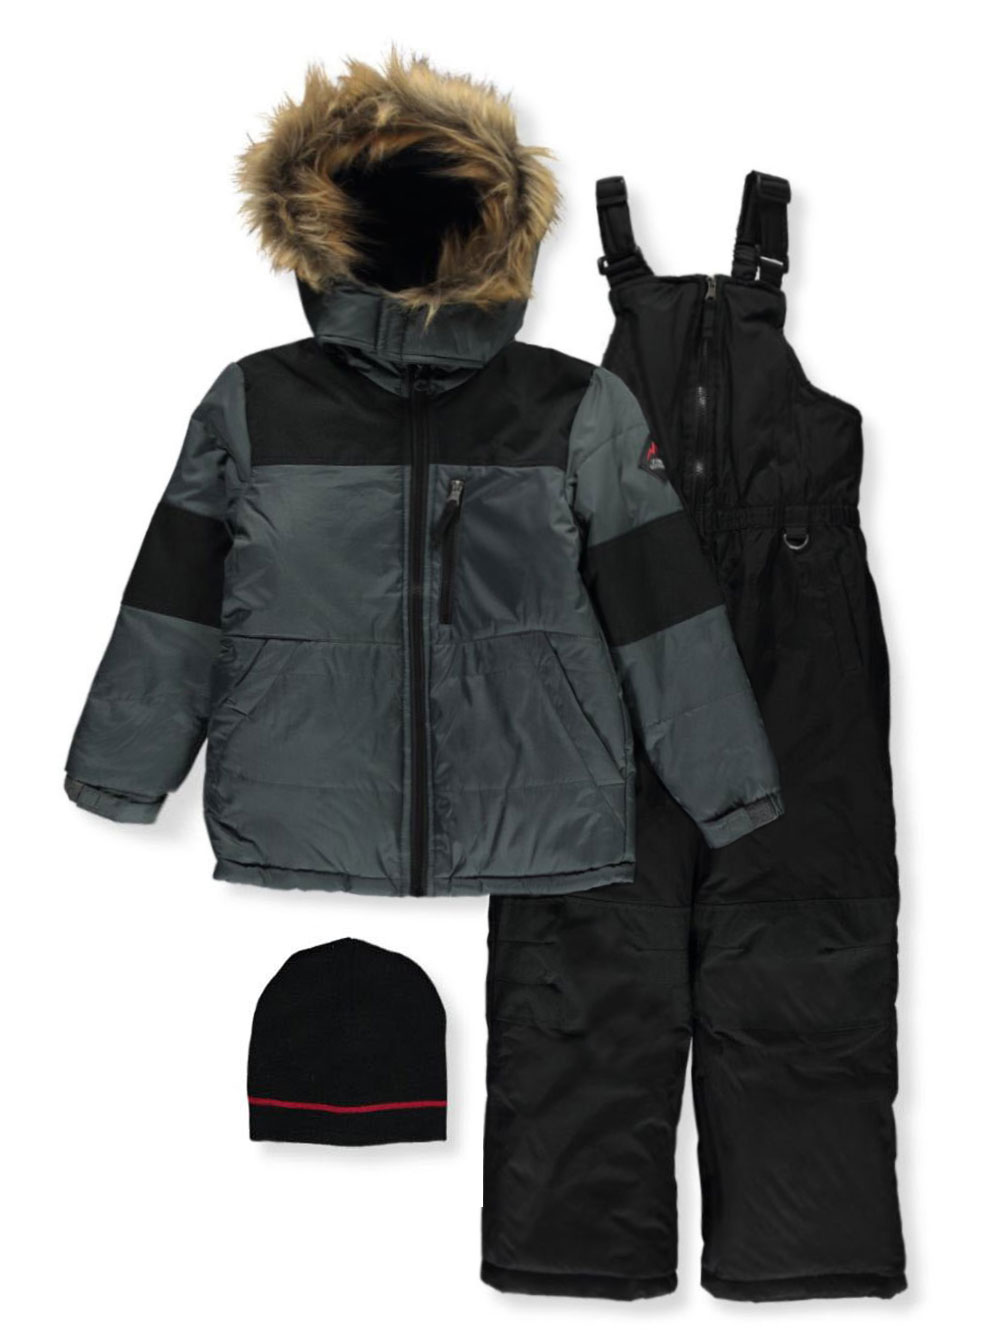 Boys Charcoal Snowsuits